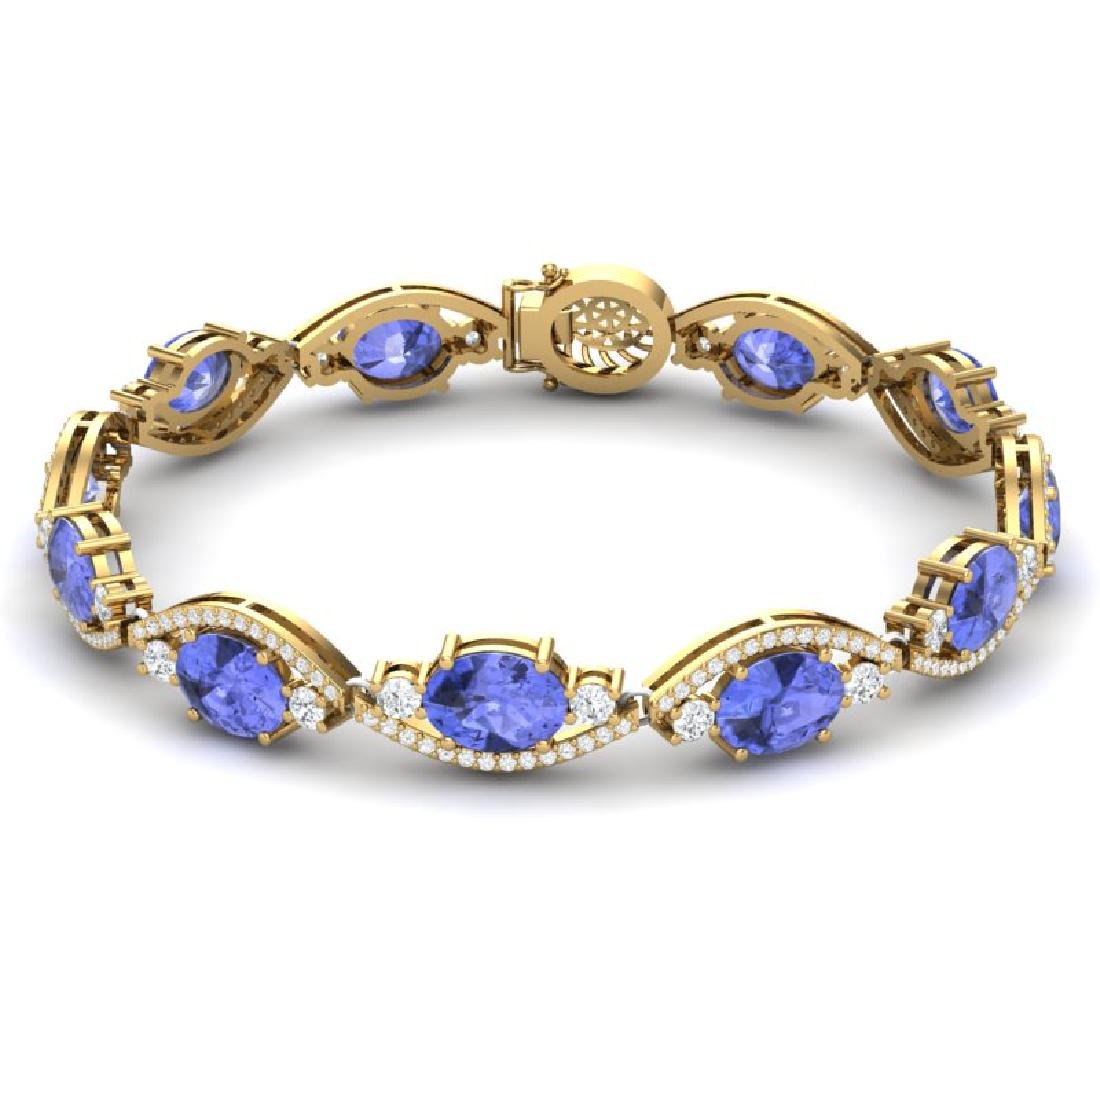 20.5 CTW Royalty Tanzanite & VS Diamond Bracelet 18K - 3